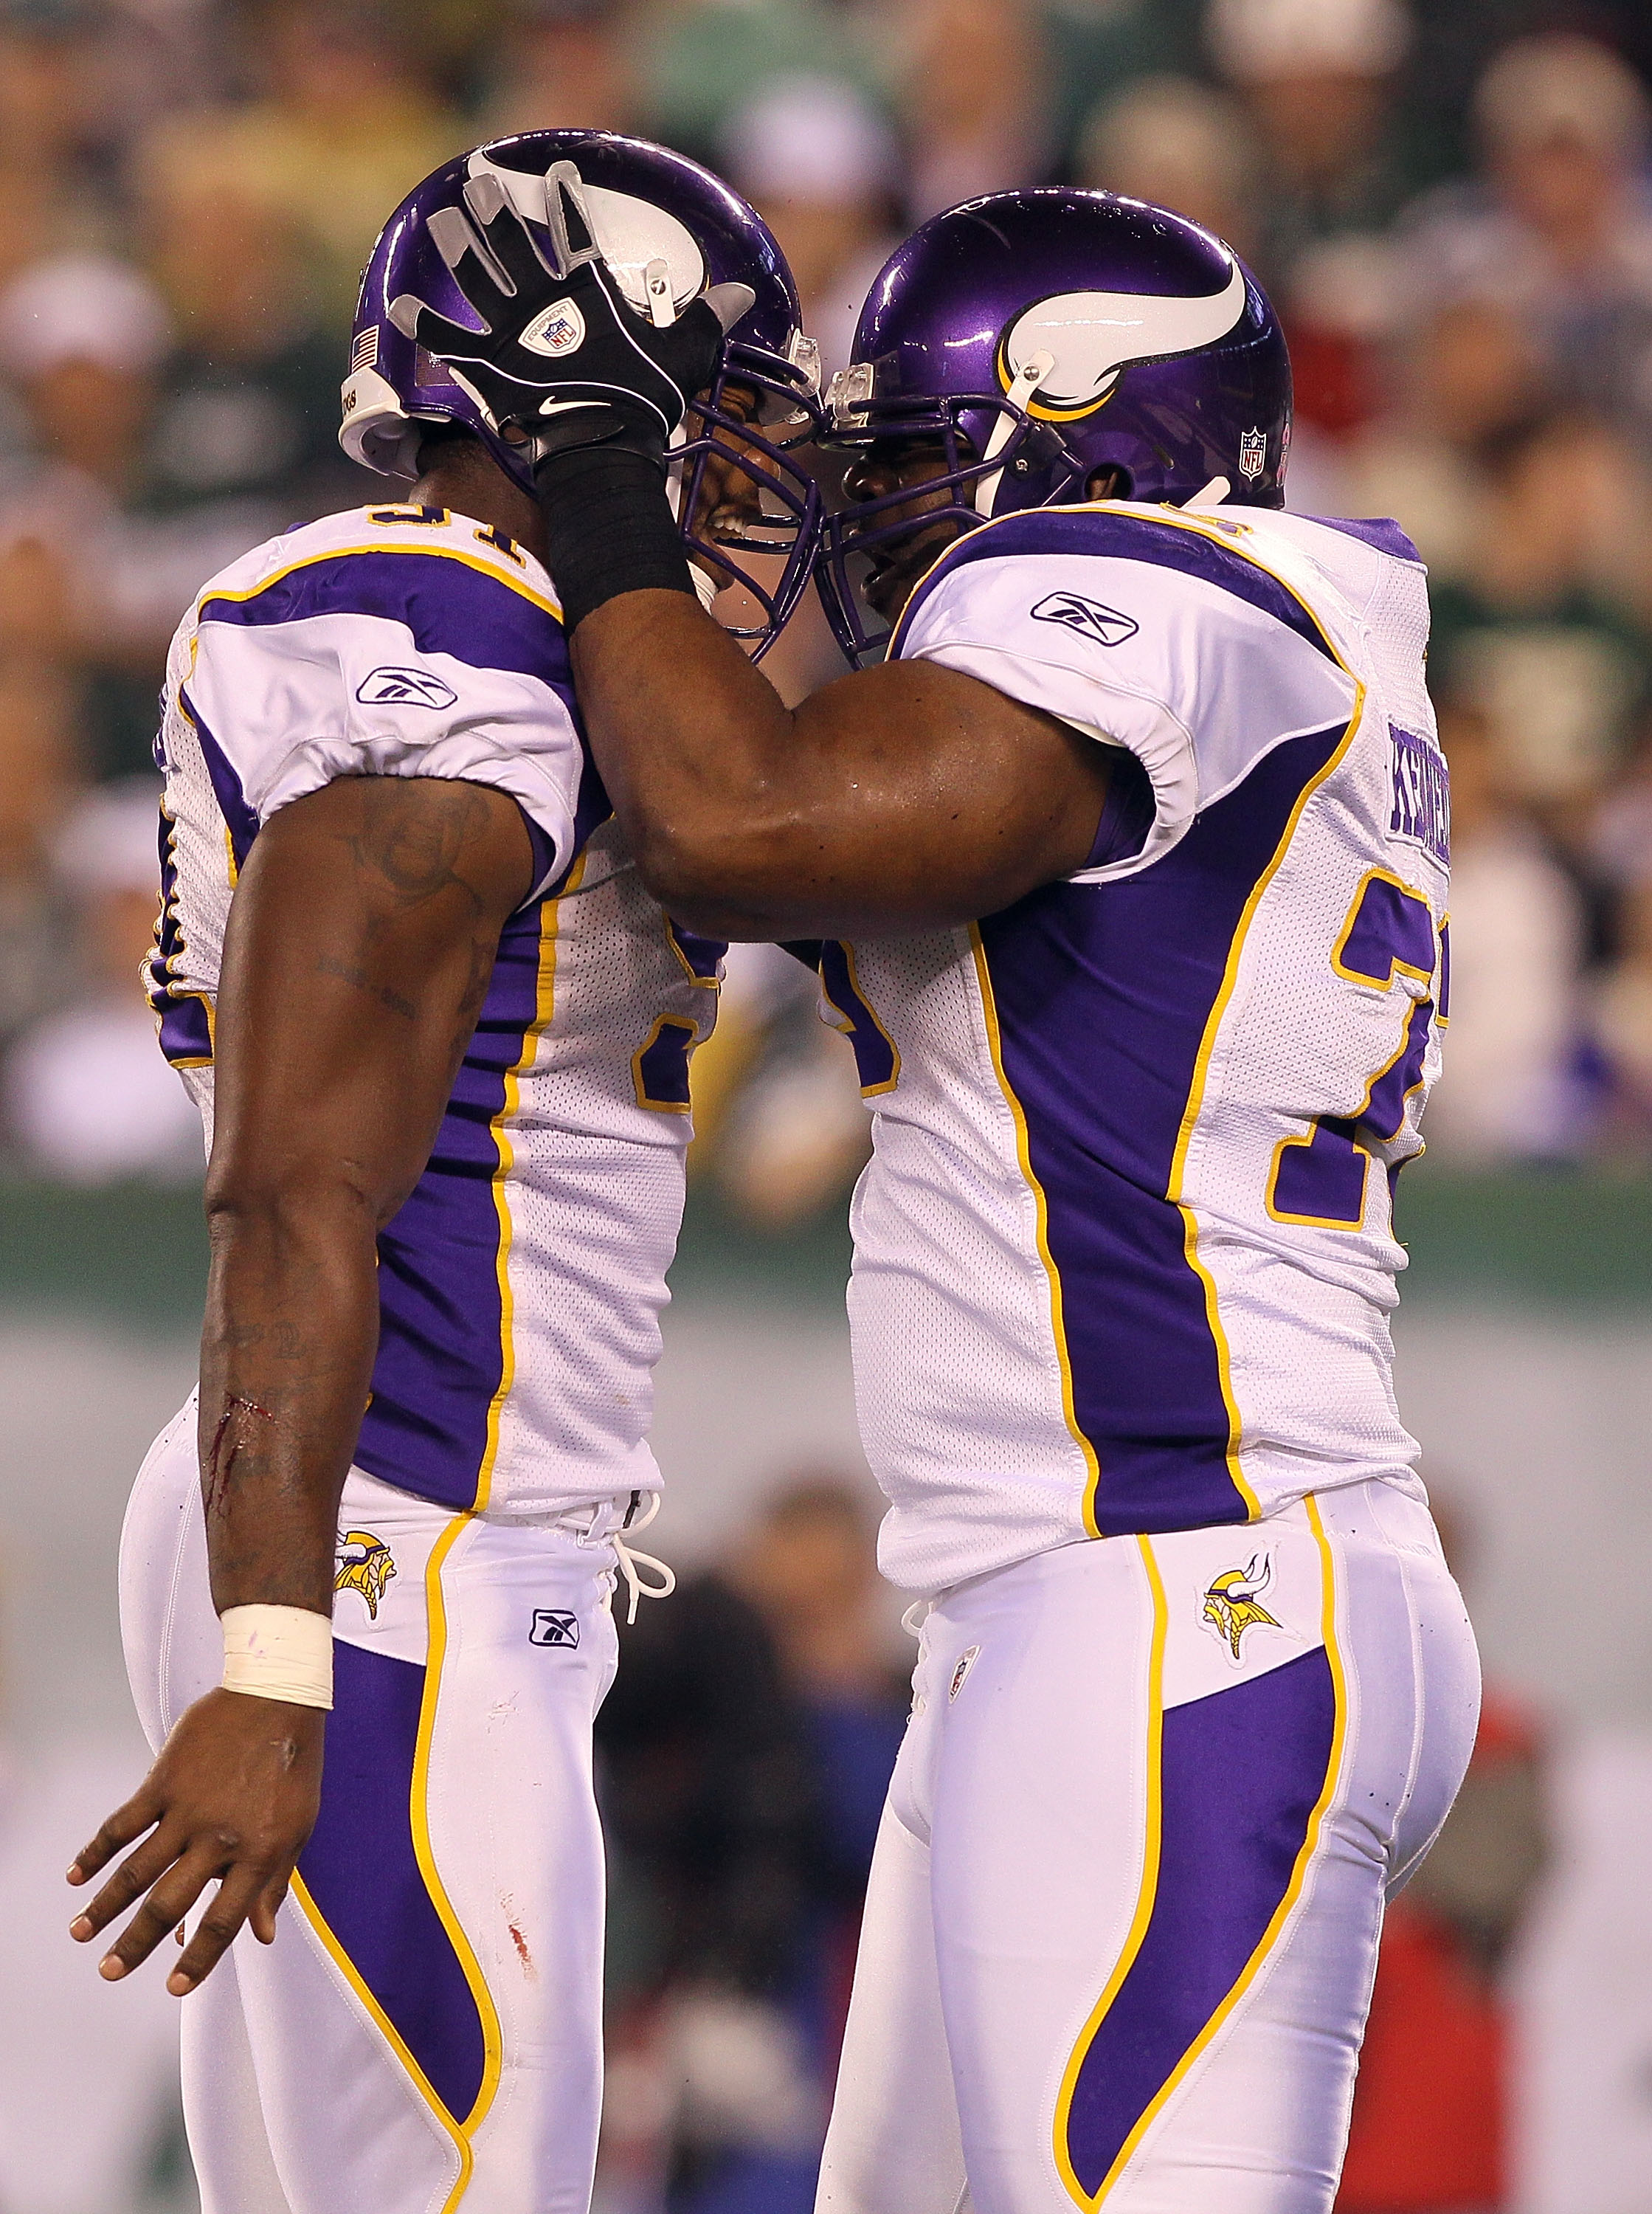 EAST RUTHERFORD, NJ - OCTOBER 11:  (L-R) Ray Edwards #91 and Jimmy Kennedy #73 of the Minnesota Vikings celebrate after Edwards recorded a sack against the New York Jets at New Meadowlands Stadium on October 11, 2010 in East Rutherford, New Jersey.  (Phot